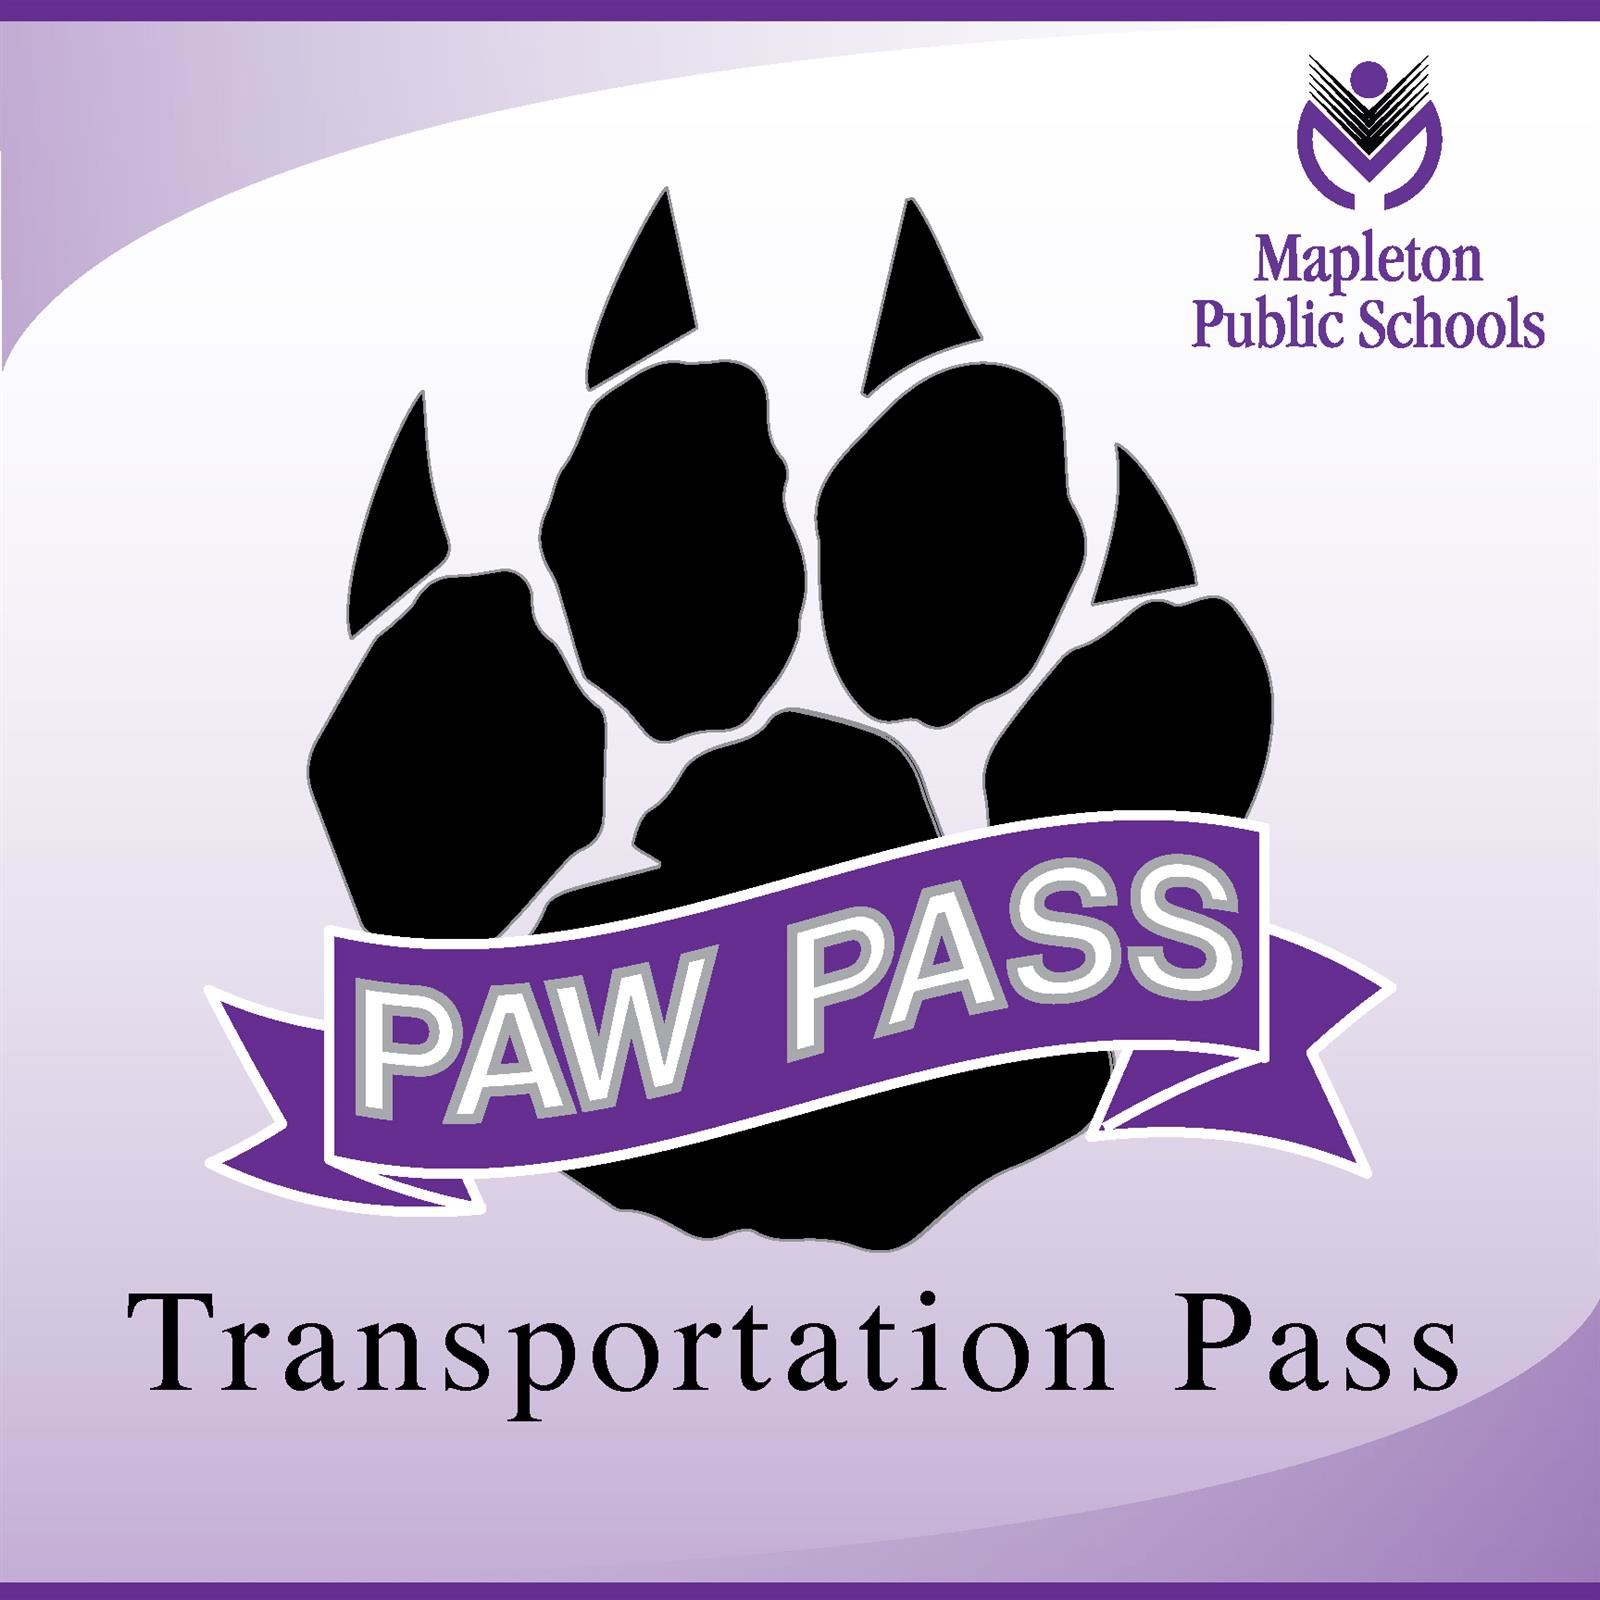 Image of the paw pass logo